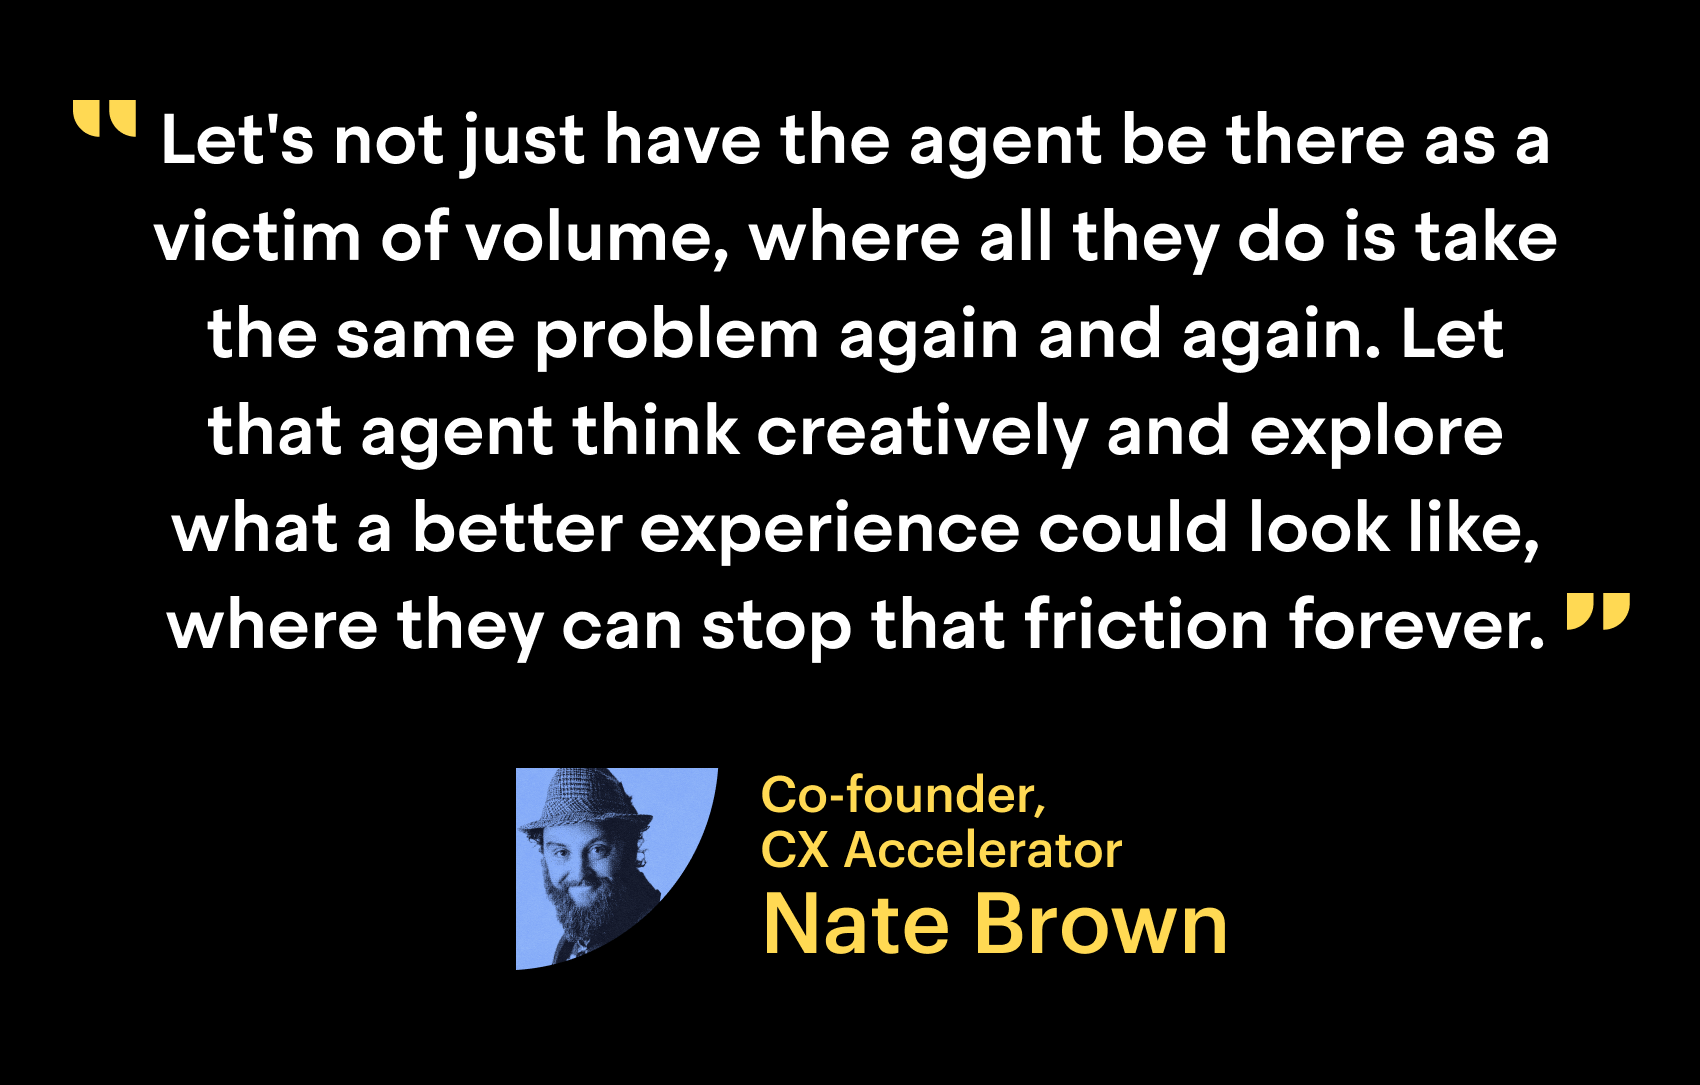 """Let not just have the agent be there as the victim of volume, where all they do is take the same problem again and again. Let that agent think creatively and explore what a better experience could look like, where that can stop that friction forever."" - Nate Brown, Co-founder, CX Accelerator"